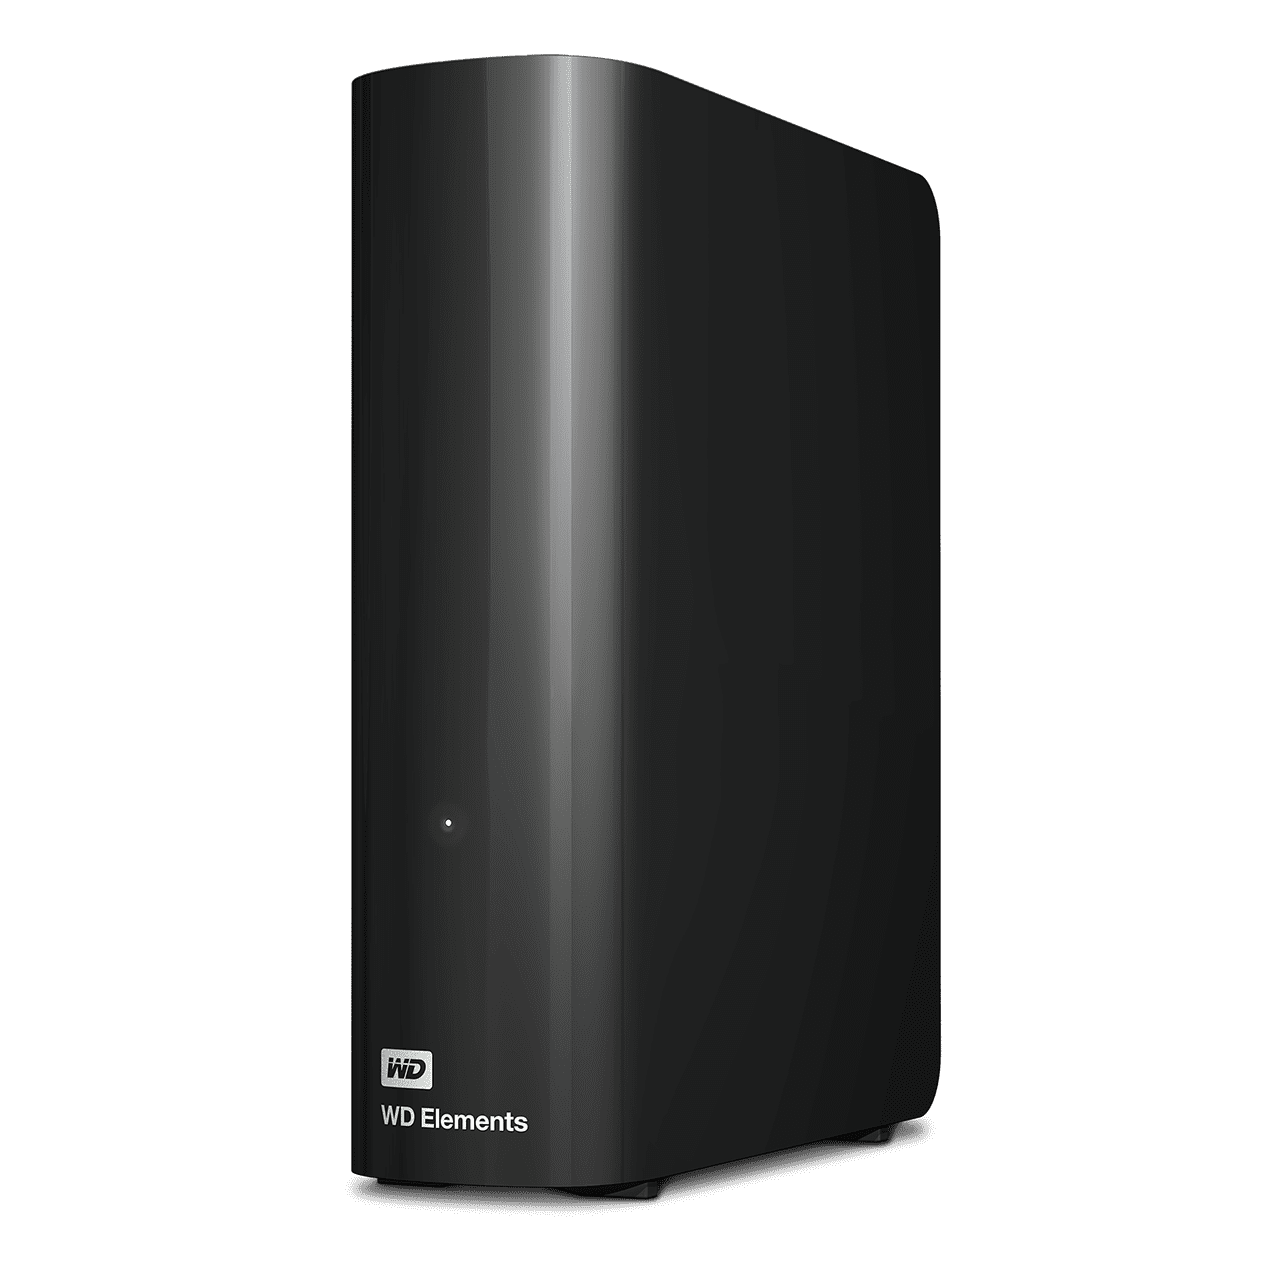 $139.99 8TB WD Elements Desktop External HDD for $112 + Free Shipping for Plex Pass Subscribers